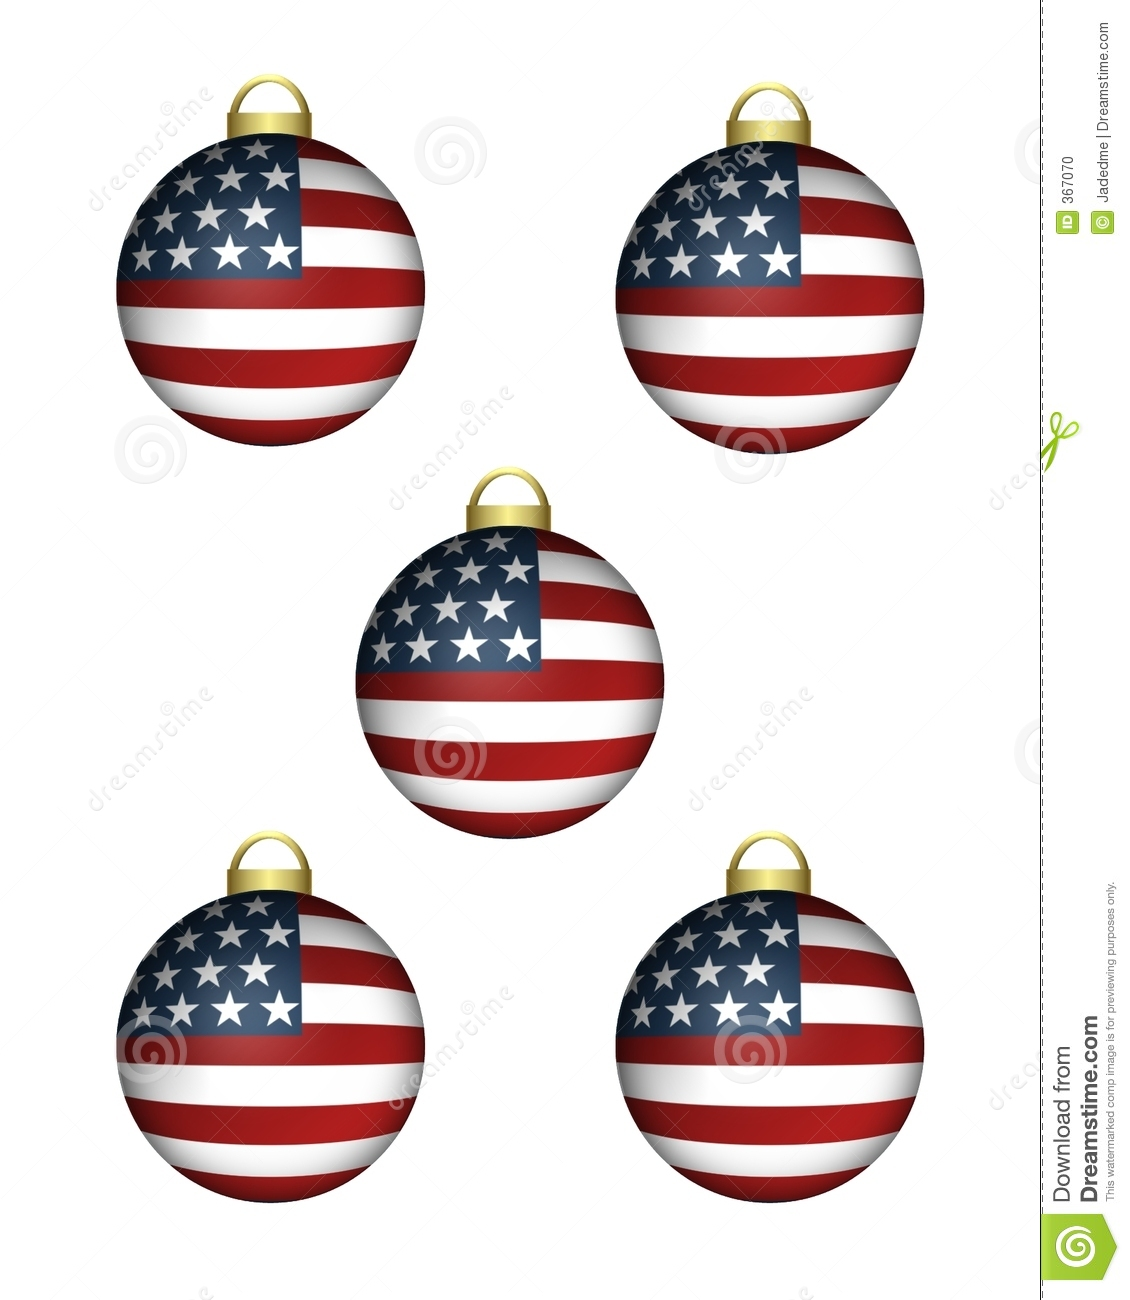 Americana christmas stock photo image 367070 for American christmas decorations